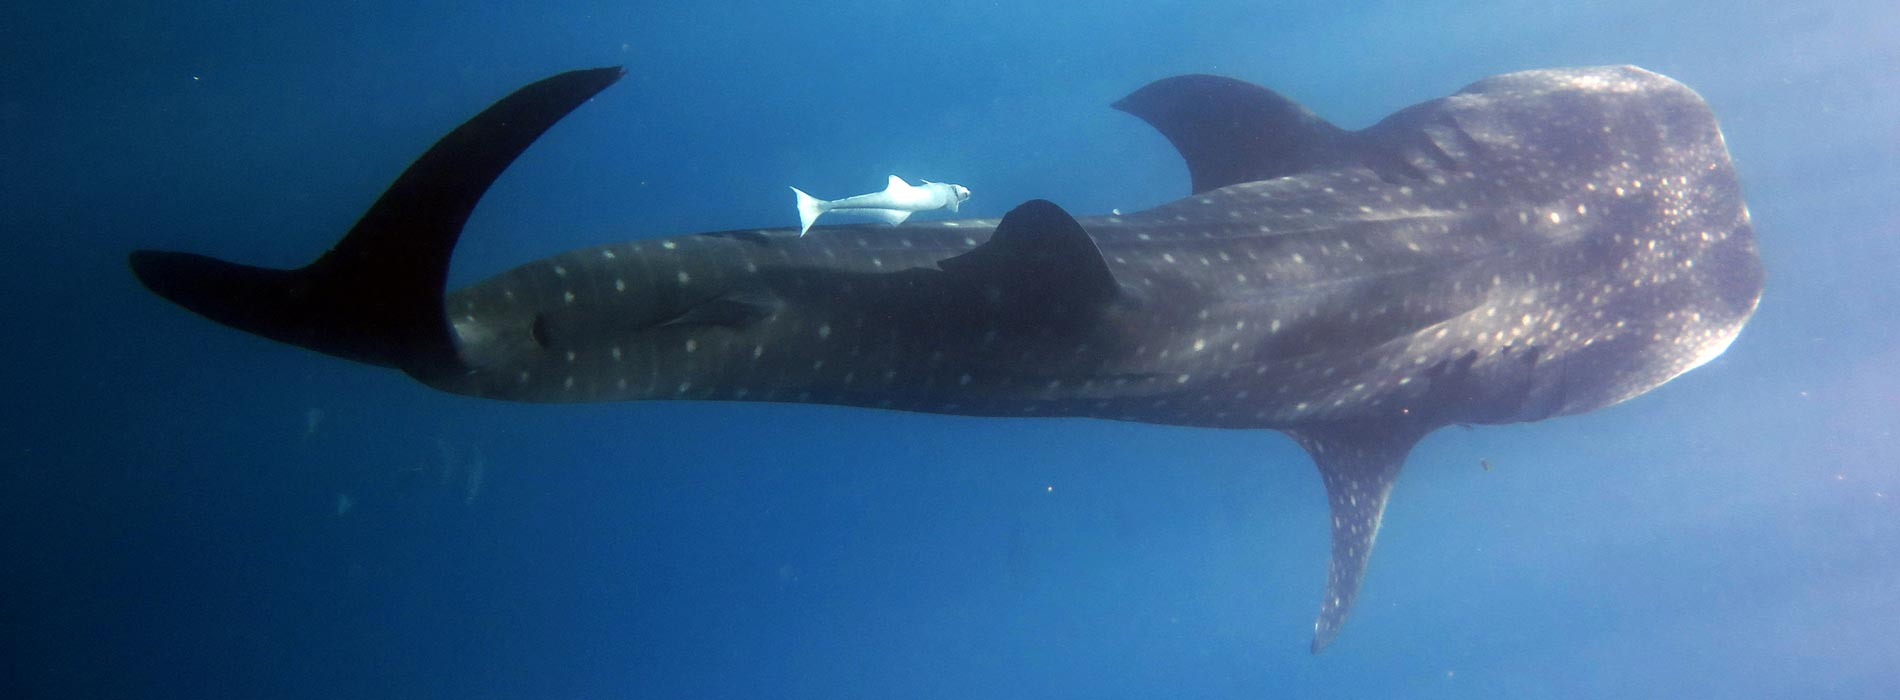 Manta Diving Nosy Be - Whale Shark Whatching